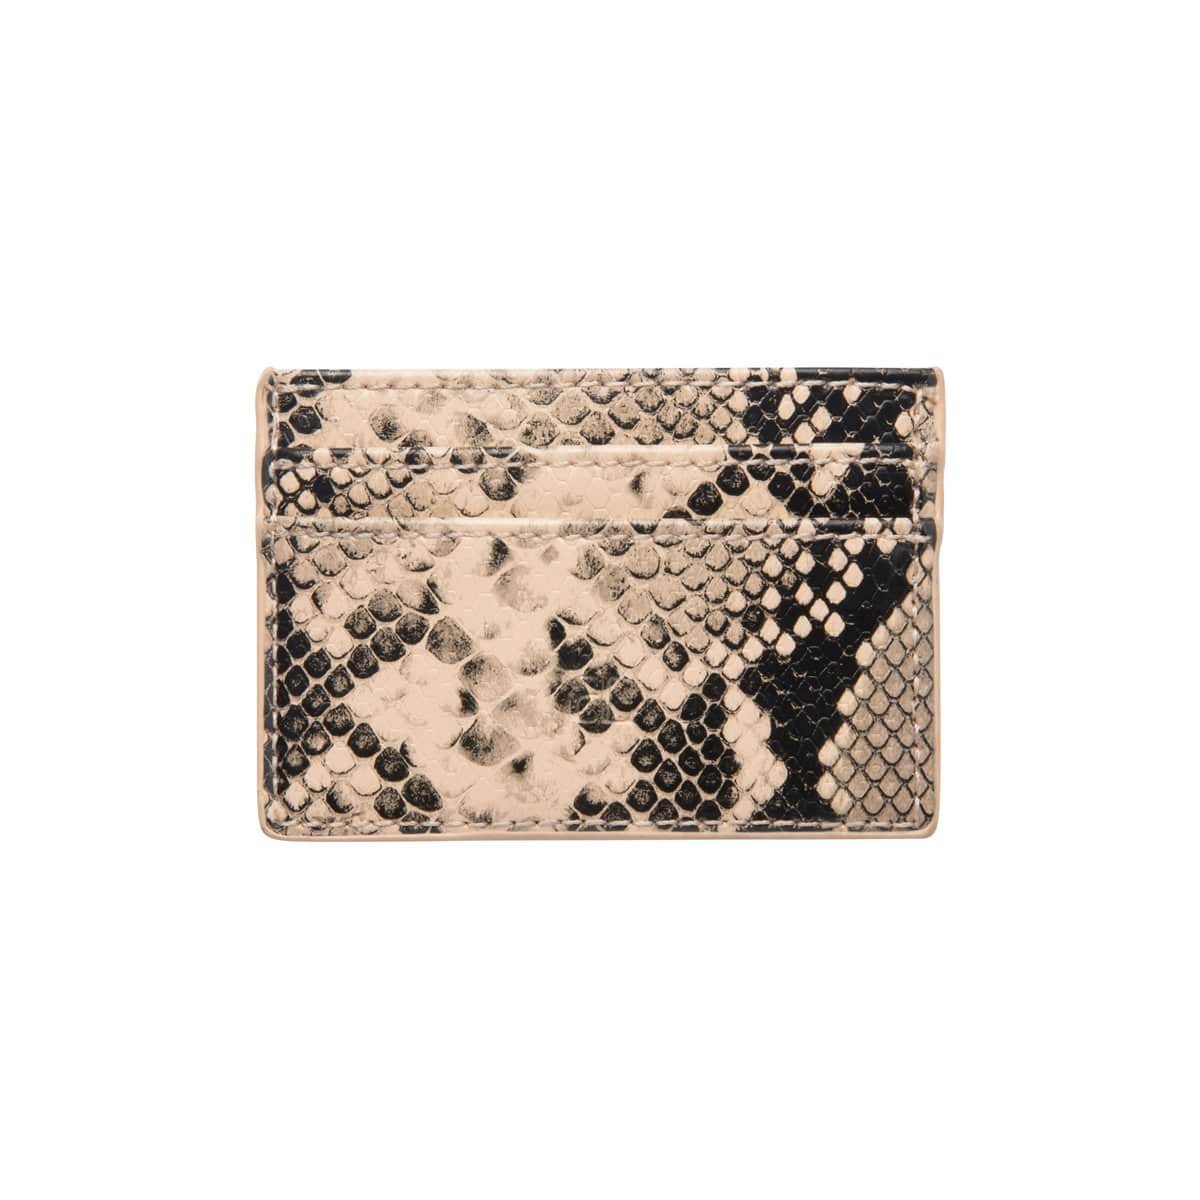 Cream & Black Snakeskin Clea Card Holder